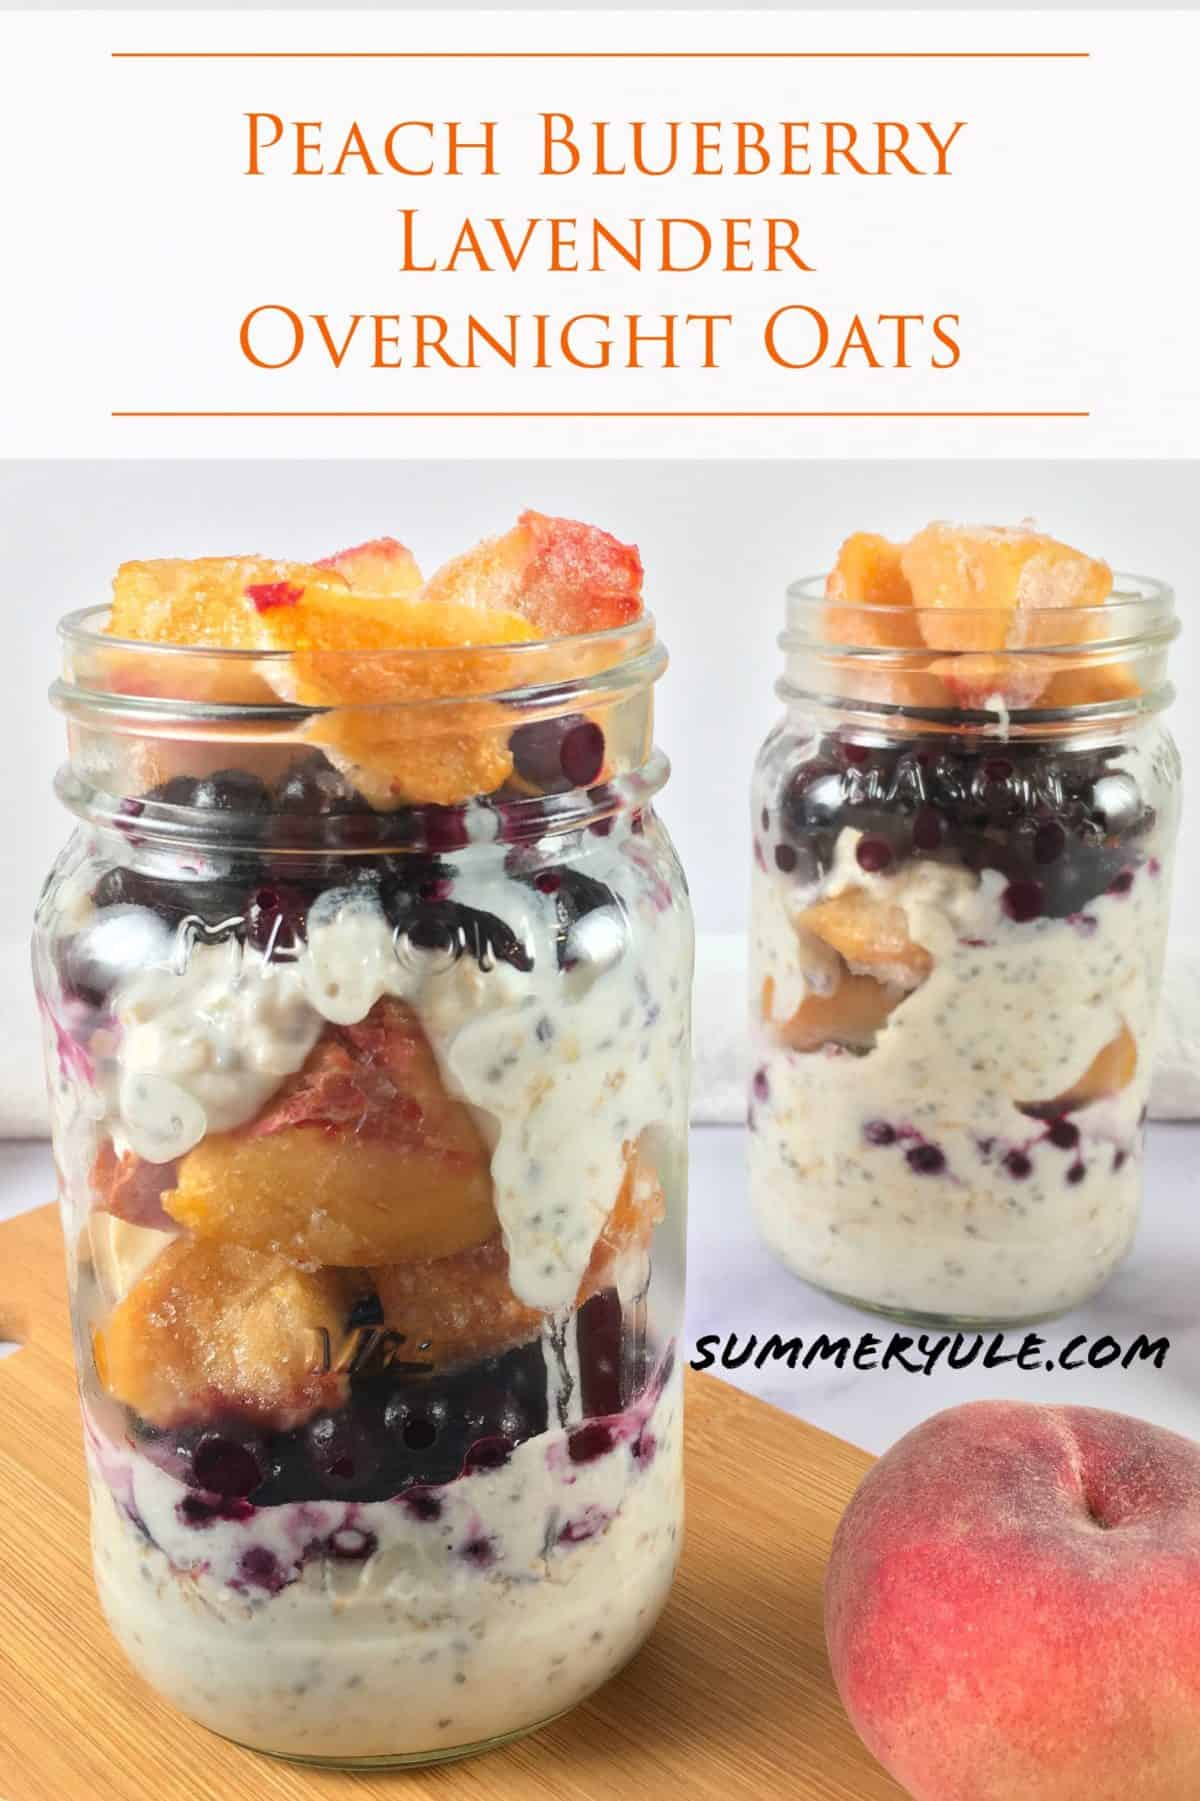 Lavender recipe overnight oats Pinterest image